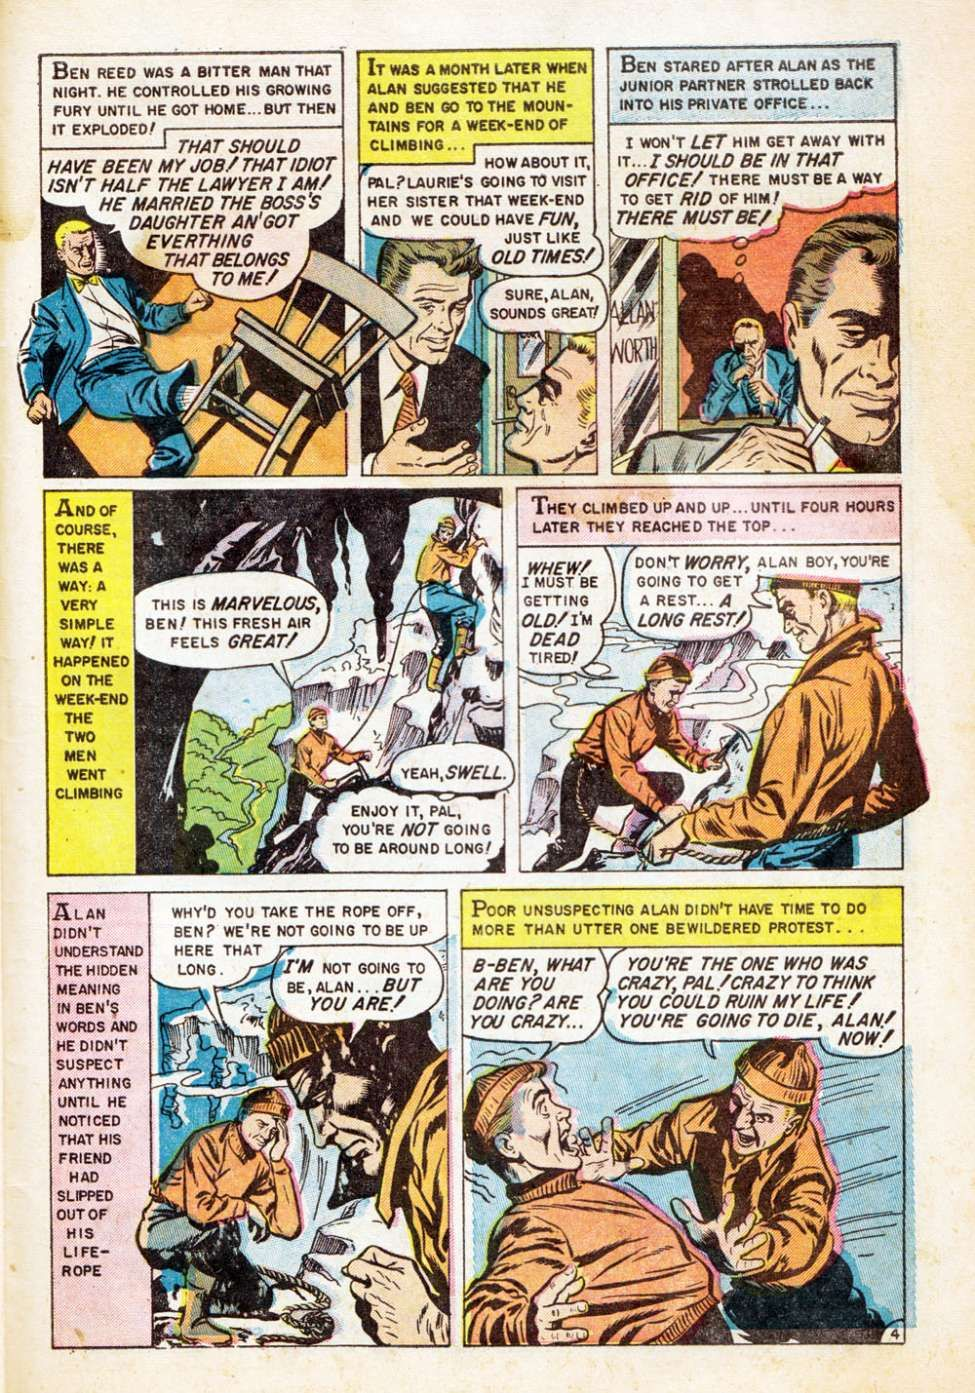 THE GOLD READING ROOM - Page 643 - Golden Age Comic Books